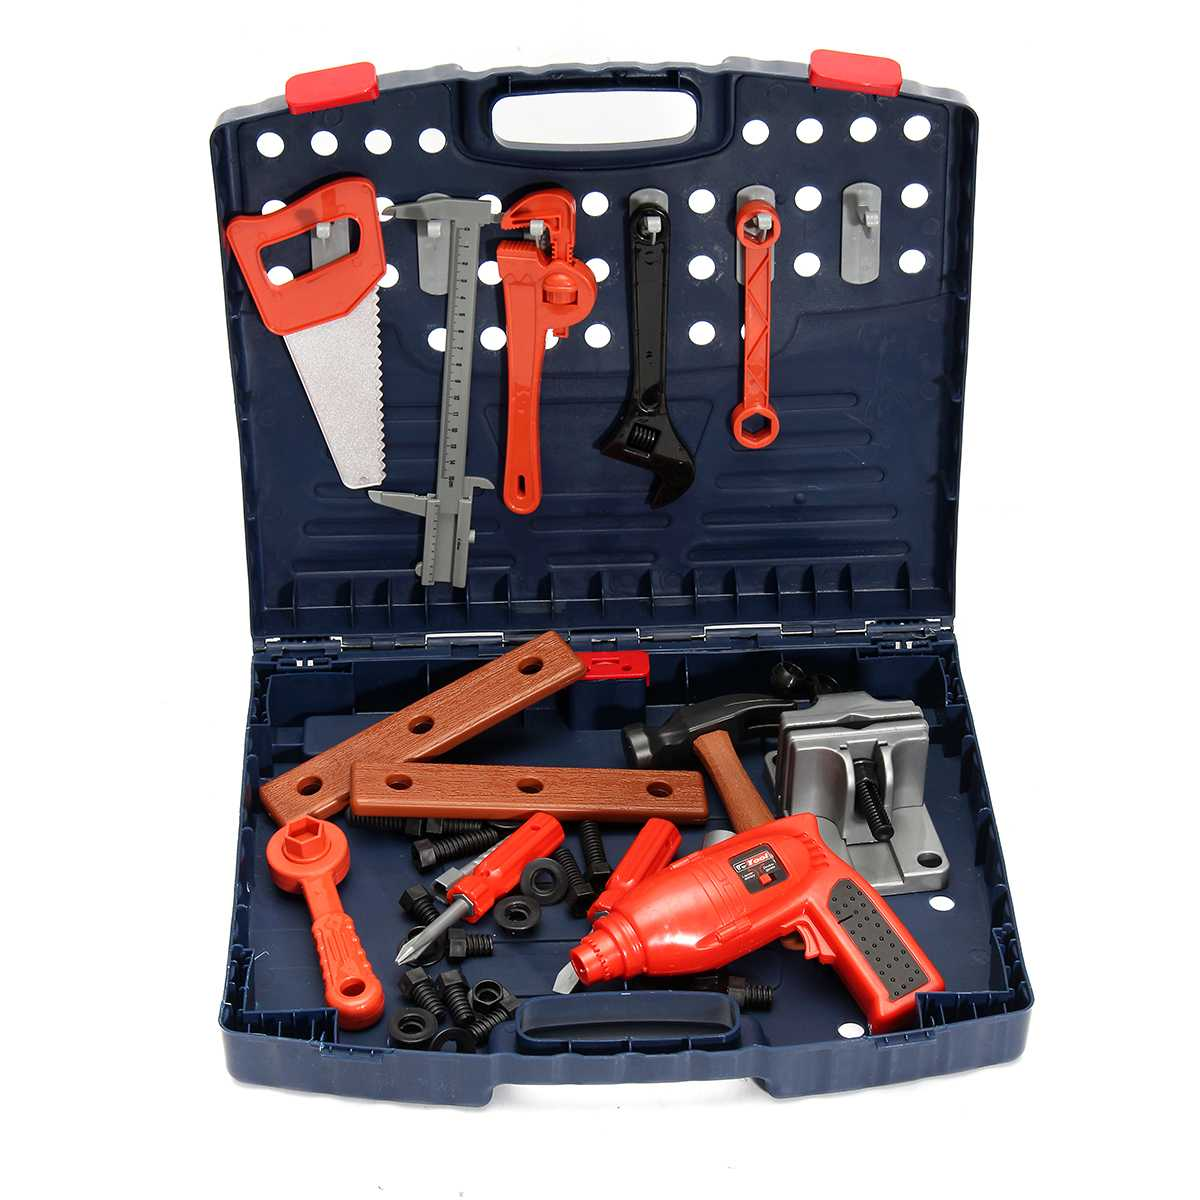 Astounding 2019 Childrens Tool Box Foldable Work Bench With Simulation Repair Tools Set Kids Baby Role Play Toy Mutifunctional Hand Tool From Blockswei 37 64 Caraccident5 Cool Chair Designs And Ideas Caraccident5Info